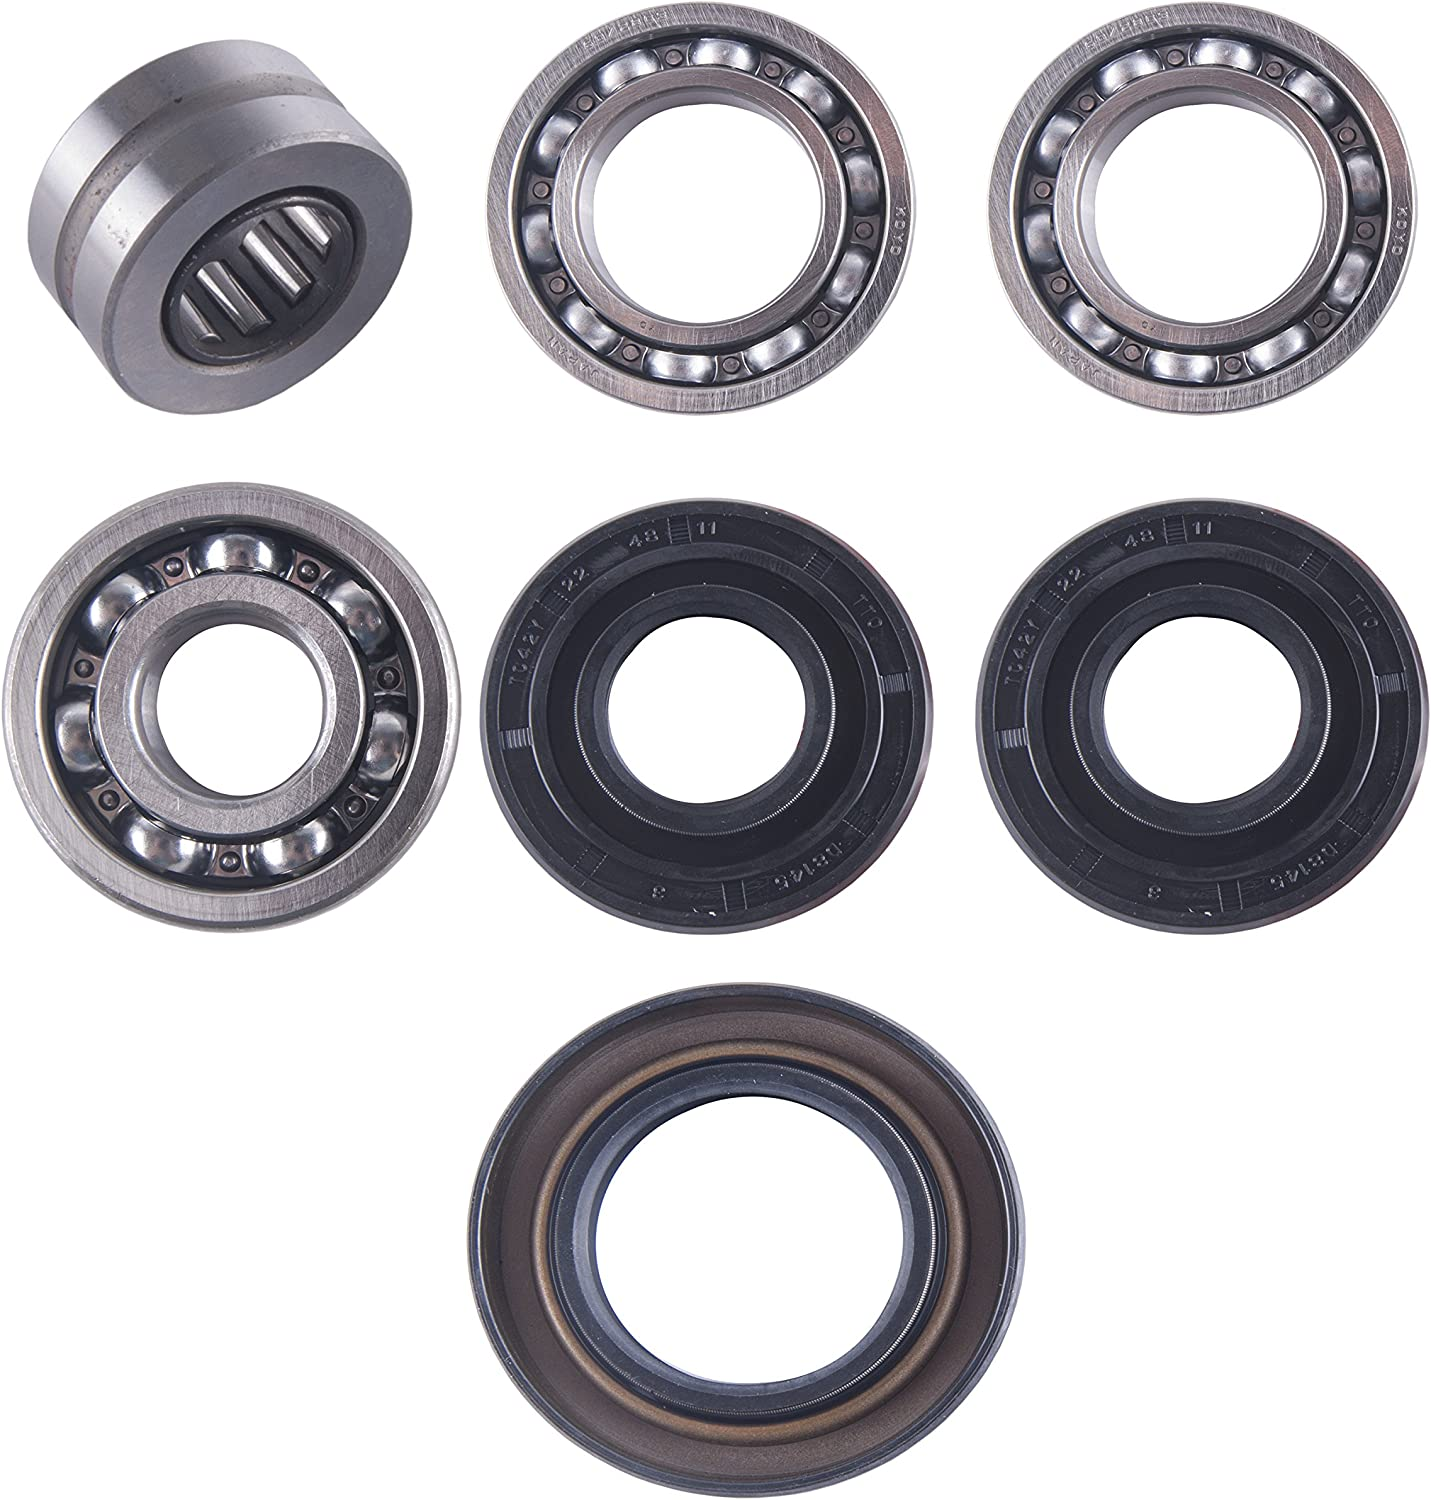 400 Big Bear East Lake Axle rear axle carrier bearing /& seal kit compatible with Yamaha 350 Bruin//Wolverine